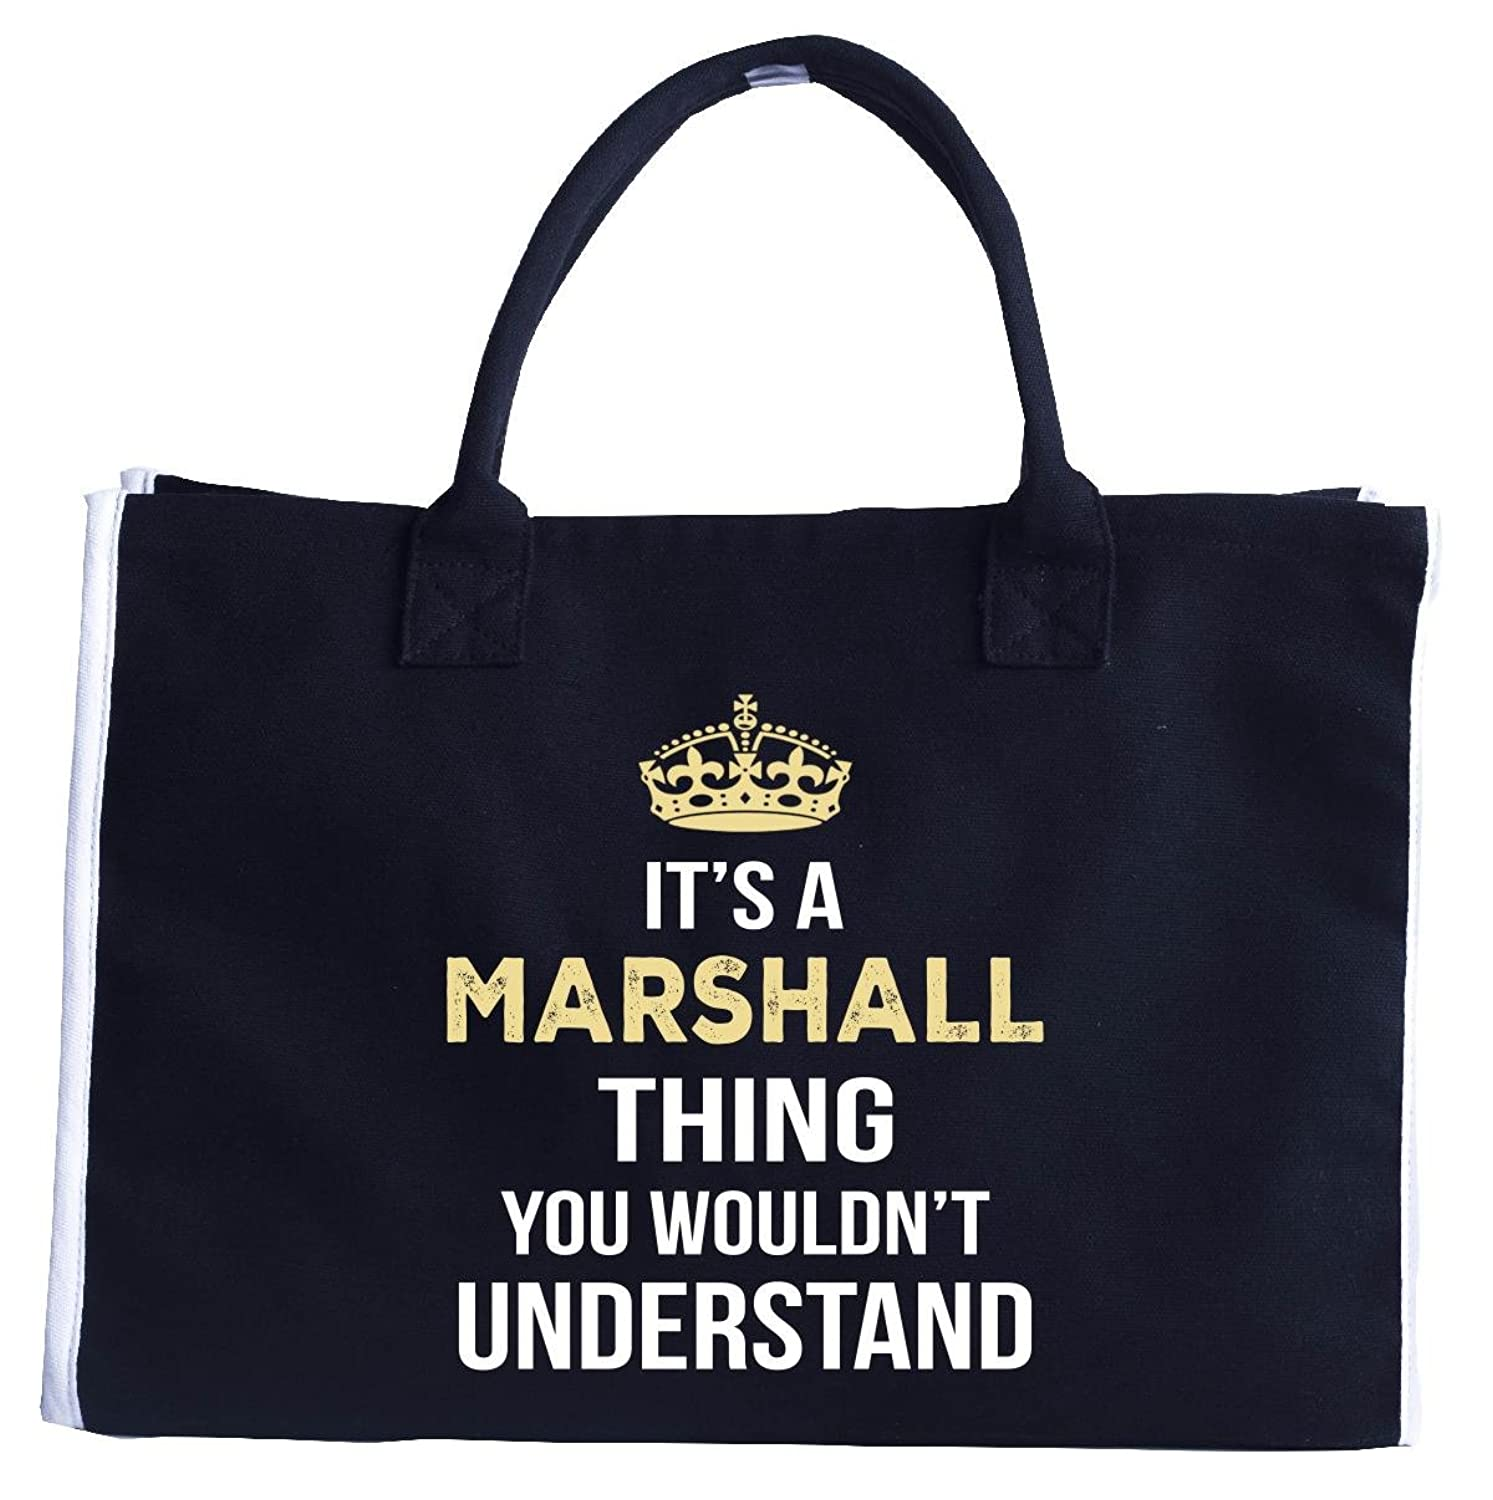 It's A Marshall Thing You Wouldn't Understand - Fashion Customized Tote Bag